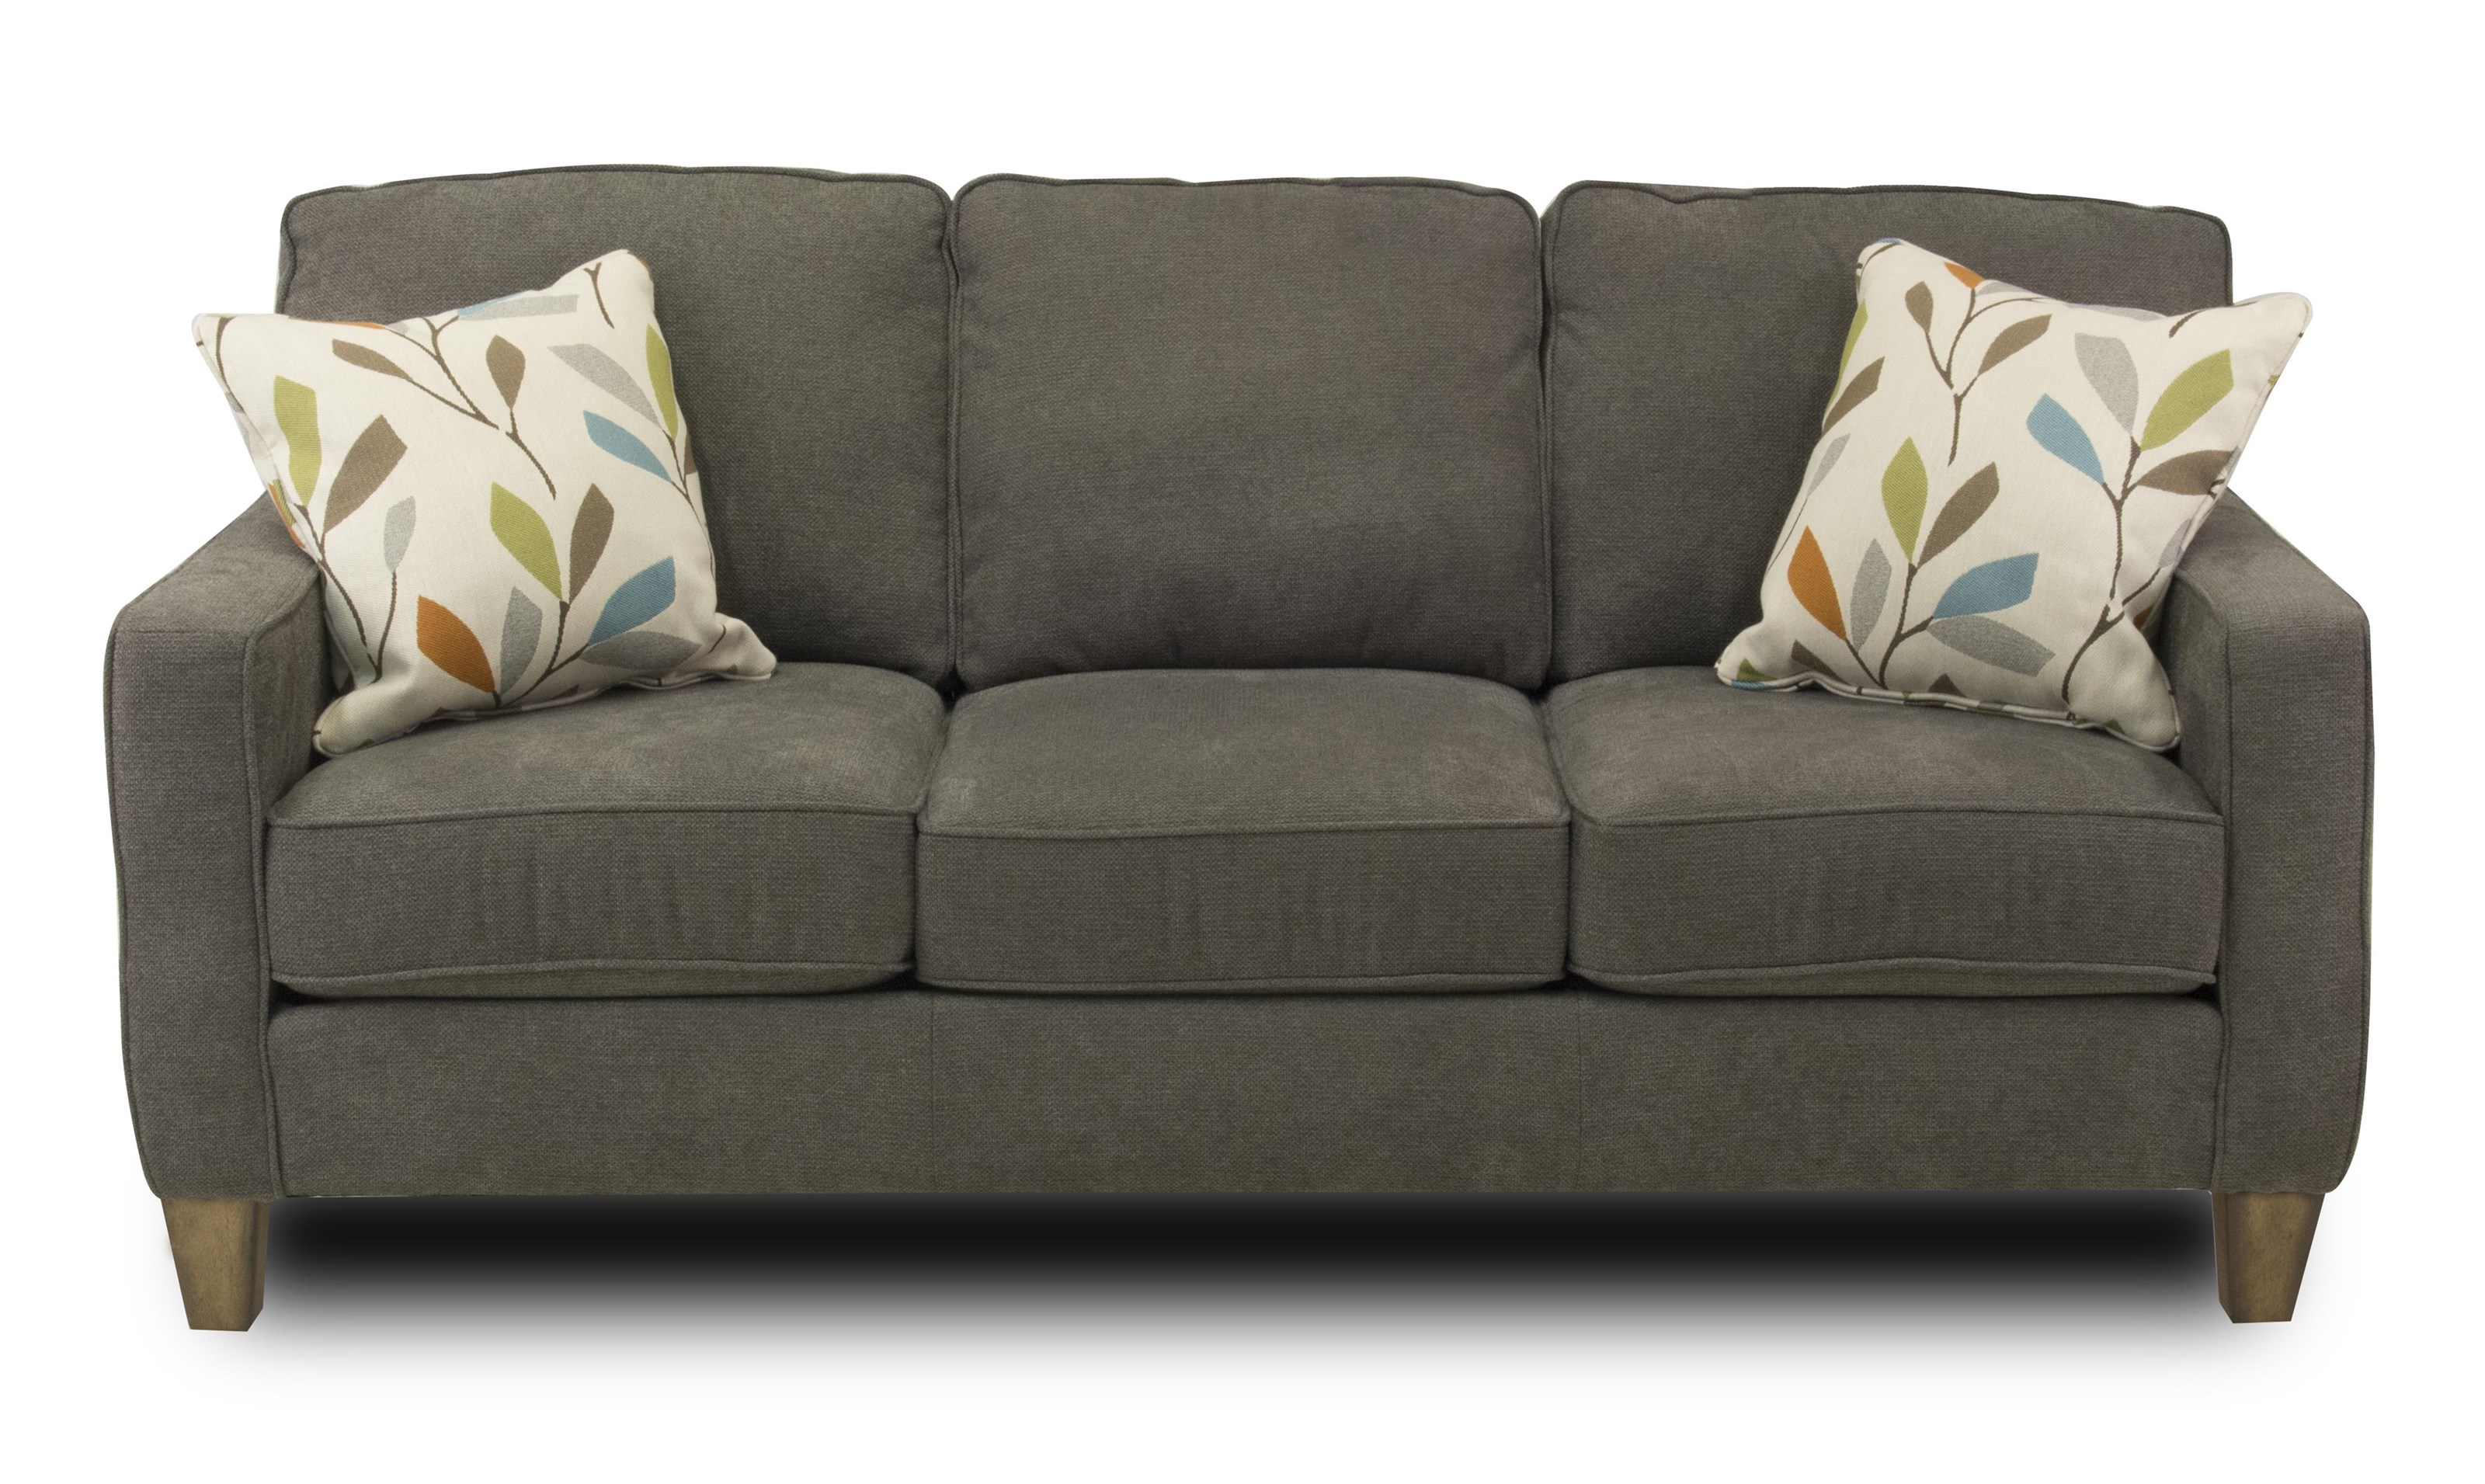 Cord Sofa Macleran Stationary Sofa With Reversible Seat Cushions And Welt Cord Accent By Flexsteel At Ruby Gordon Home